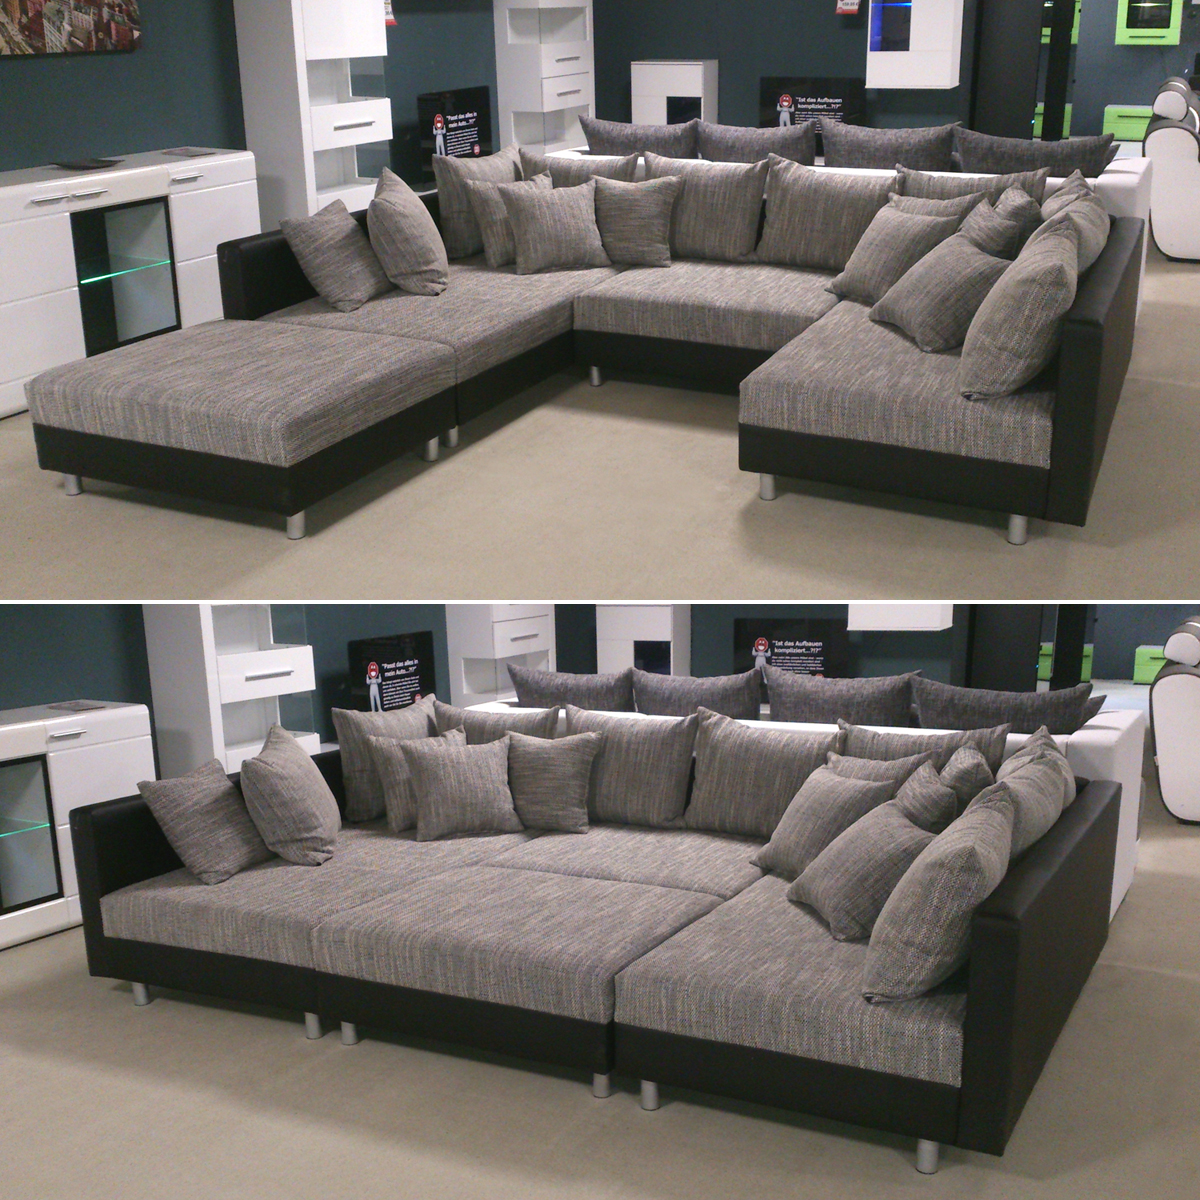 xxl sofa u form design sectional sofa matera xxl with led lights grey black ebay xxl sectional. Black Bedroom Furniture Sets. Home Design Ideas